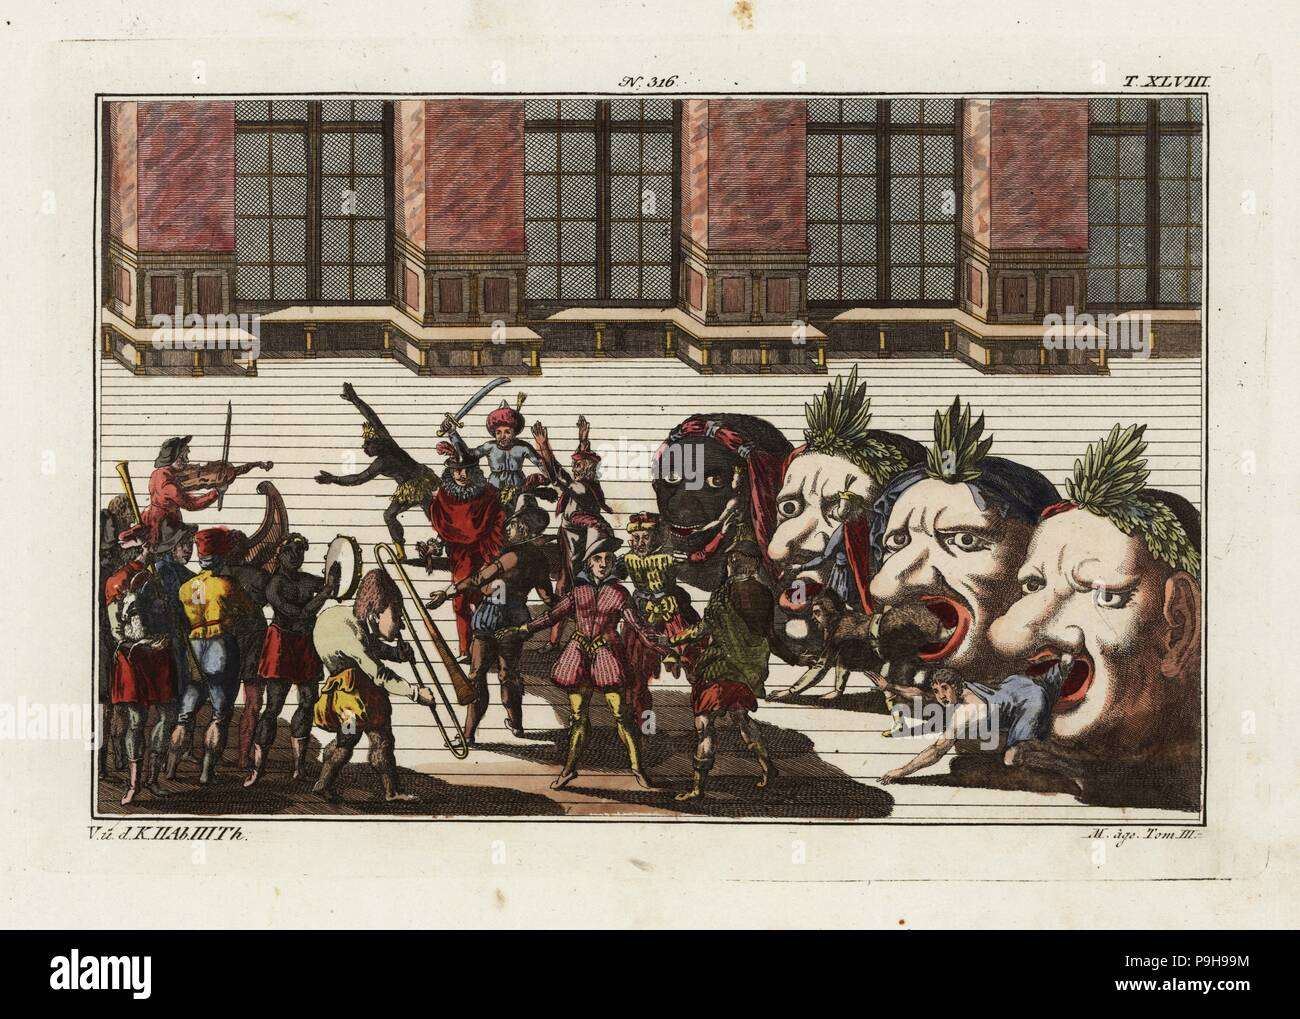 Twenty masked and costumed musicians and dancers emerge from four monstrous heads. Dance of the Nations, part of the celebrations of the birth of Freiderich, Duke of Wurttemberg, 1616. Taken from Delineation und Abbildung aller furstlichen Aufzug und Ritterspielen by Esaias von Hulsen, 1617. Handcoloured copperplate engraving from Robert von Spalart's Historical Picture of the Costumes of the Principal People of Antiquity and of the Middle Ages, Chez Collignon, Metz, 1810. - Stock Image